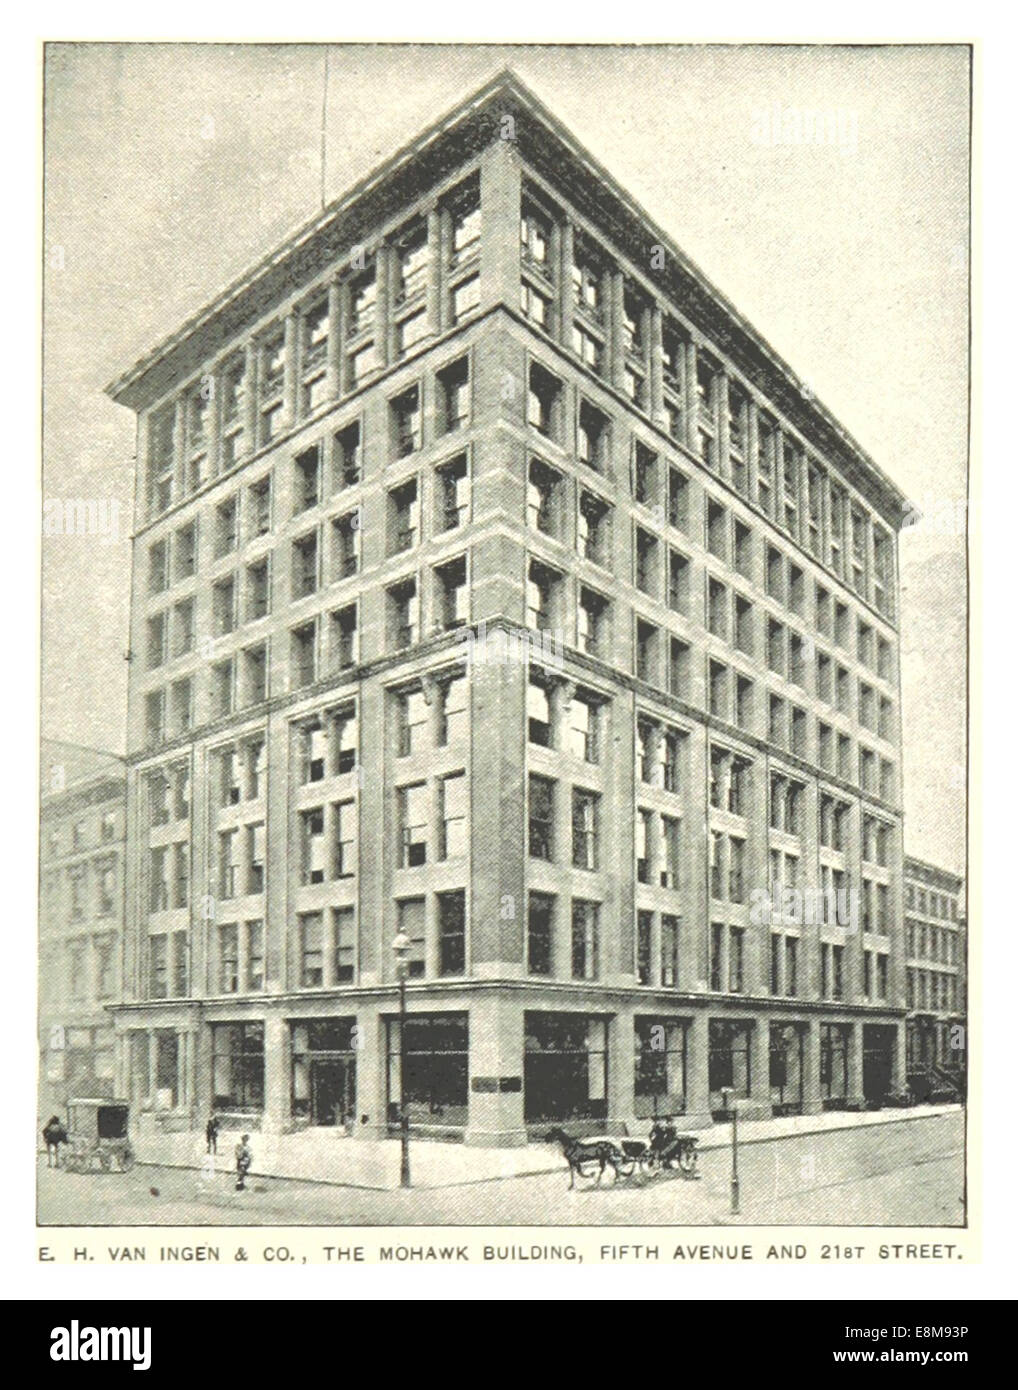 (King1893NYC) pg893 THE MOHAWK BUILDING, FIFTH AVENUE AND 21ST STREET - Stock Image